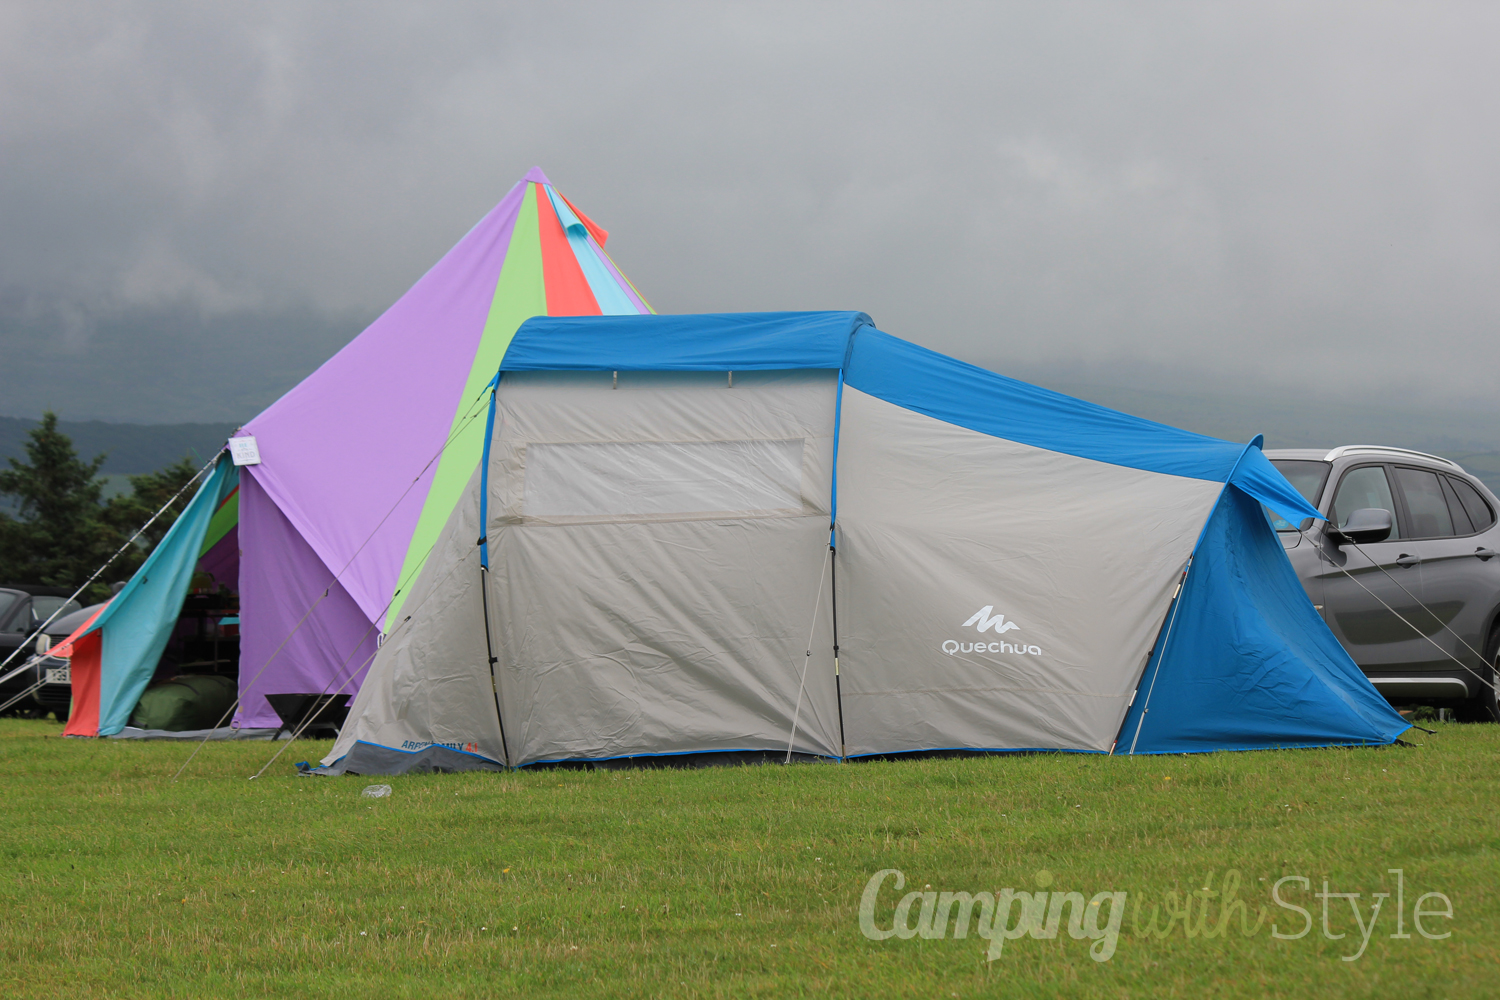 Decathlon Quechua Arpenaz 4.1 Family 4 Man Tent Review